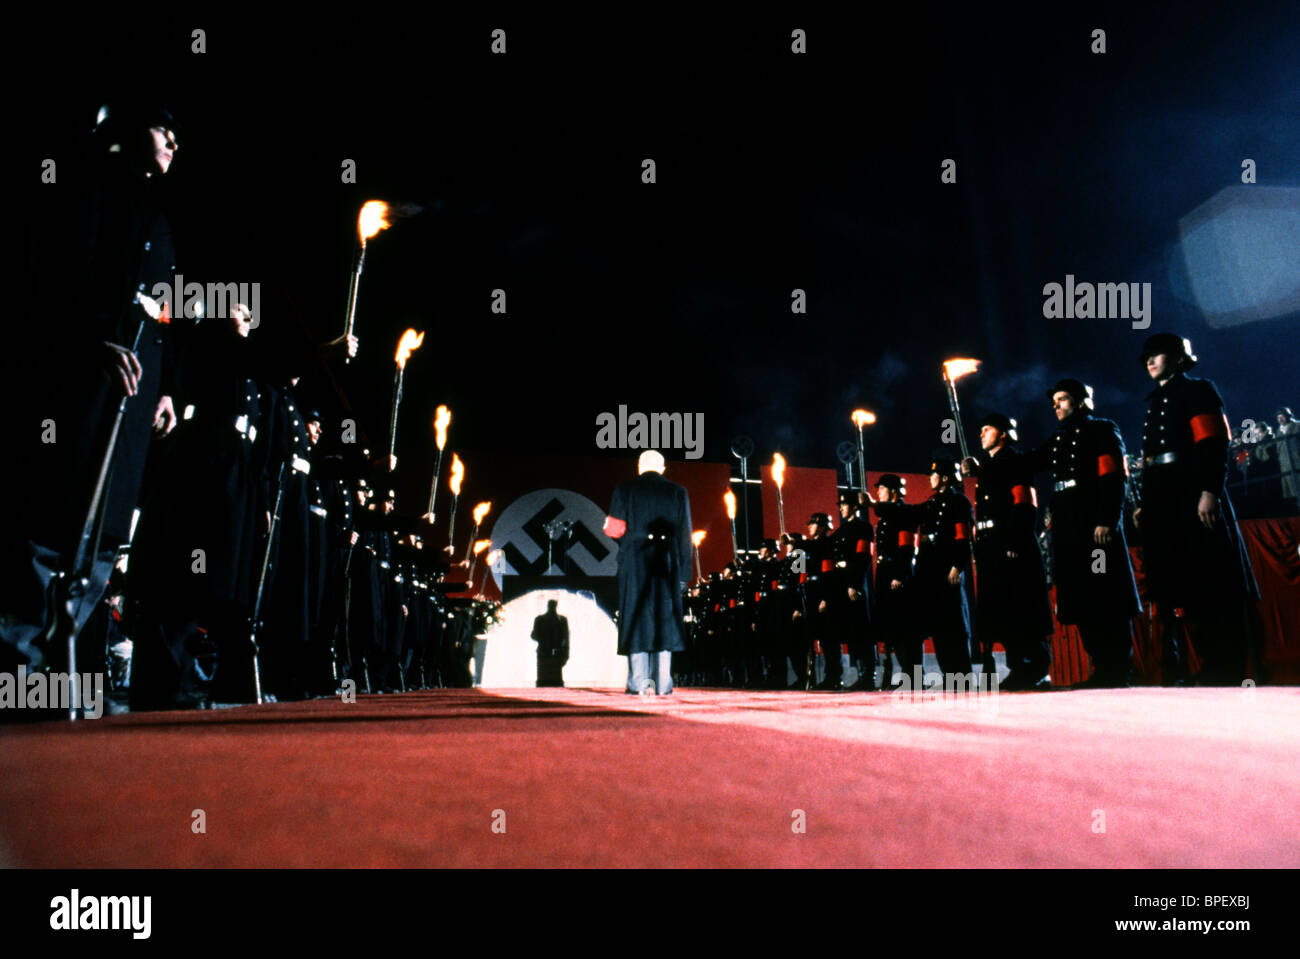 RUTGER HAUER FATHERLAND (1994) - Stock Image